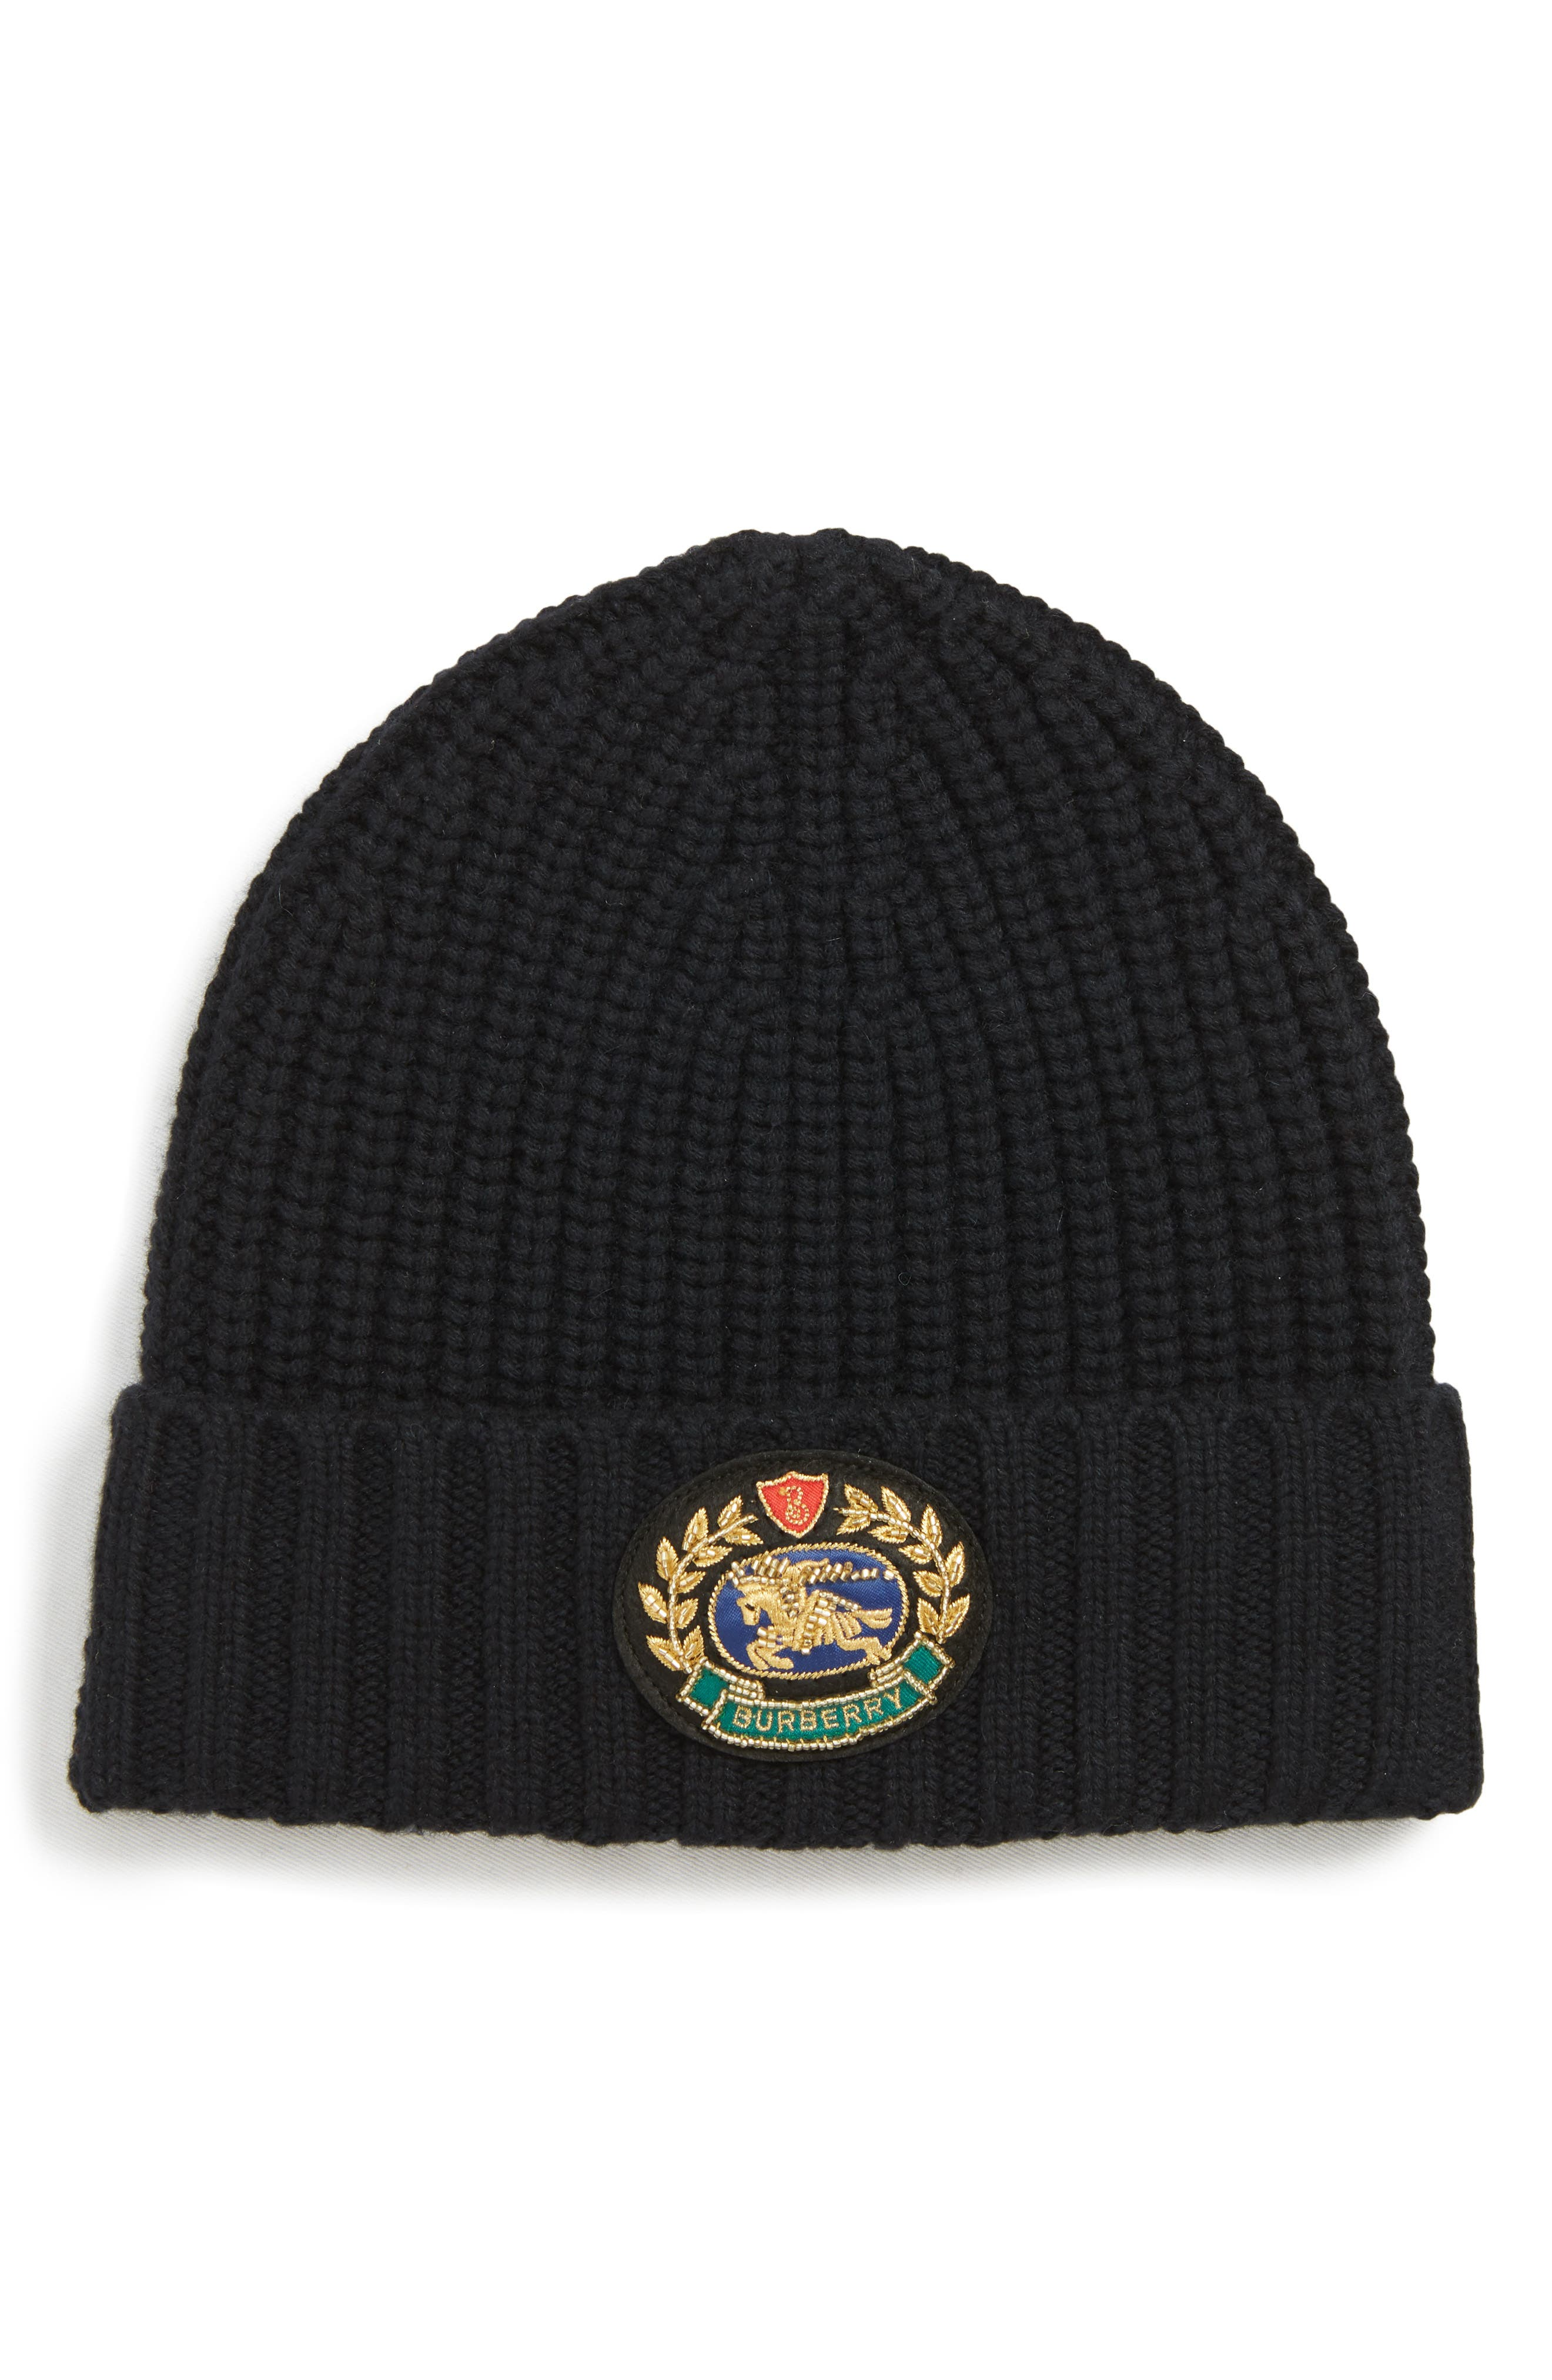 Embroidered Crest Wool & Cashmere Beanie,                             Main thumbnail 1, color,                             001